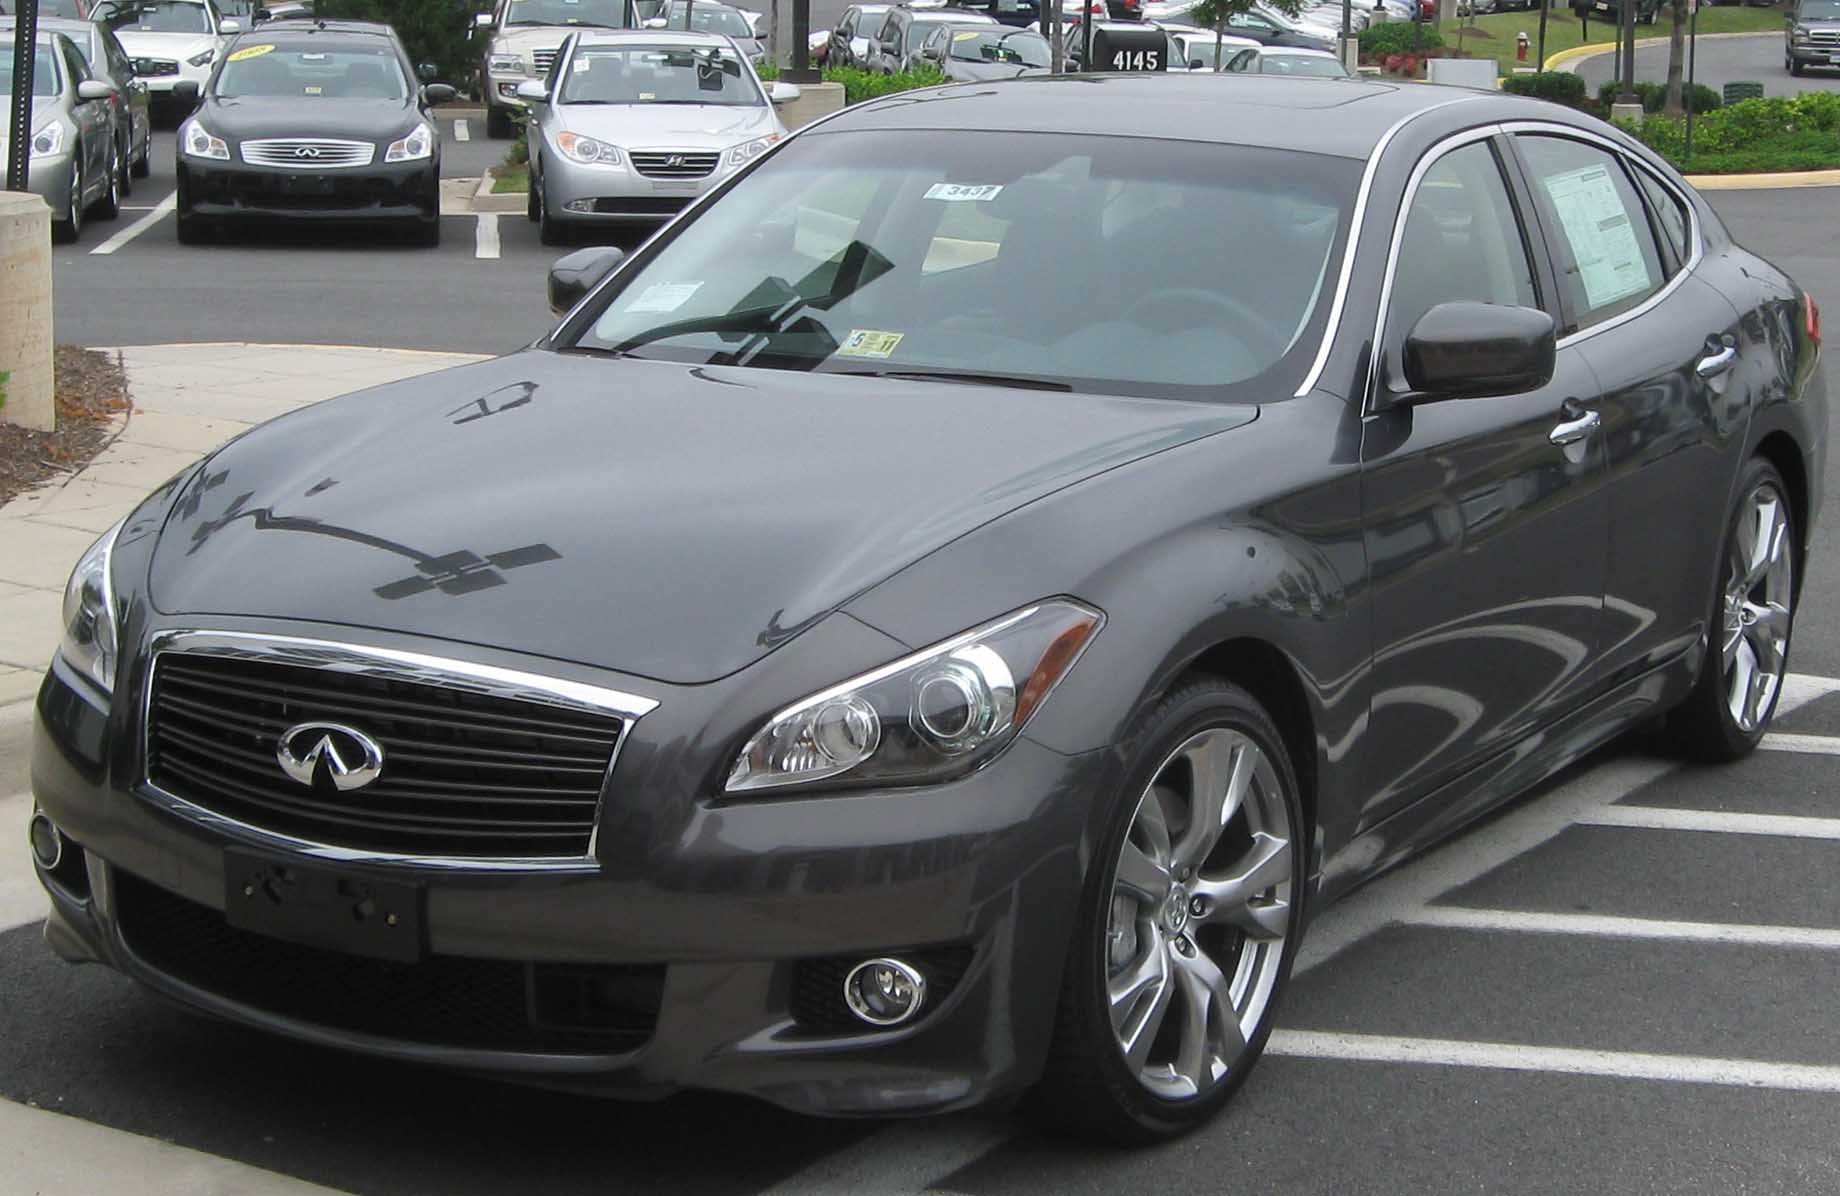 Image of an Infiniti M56